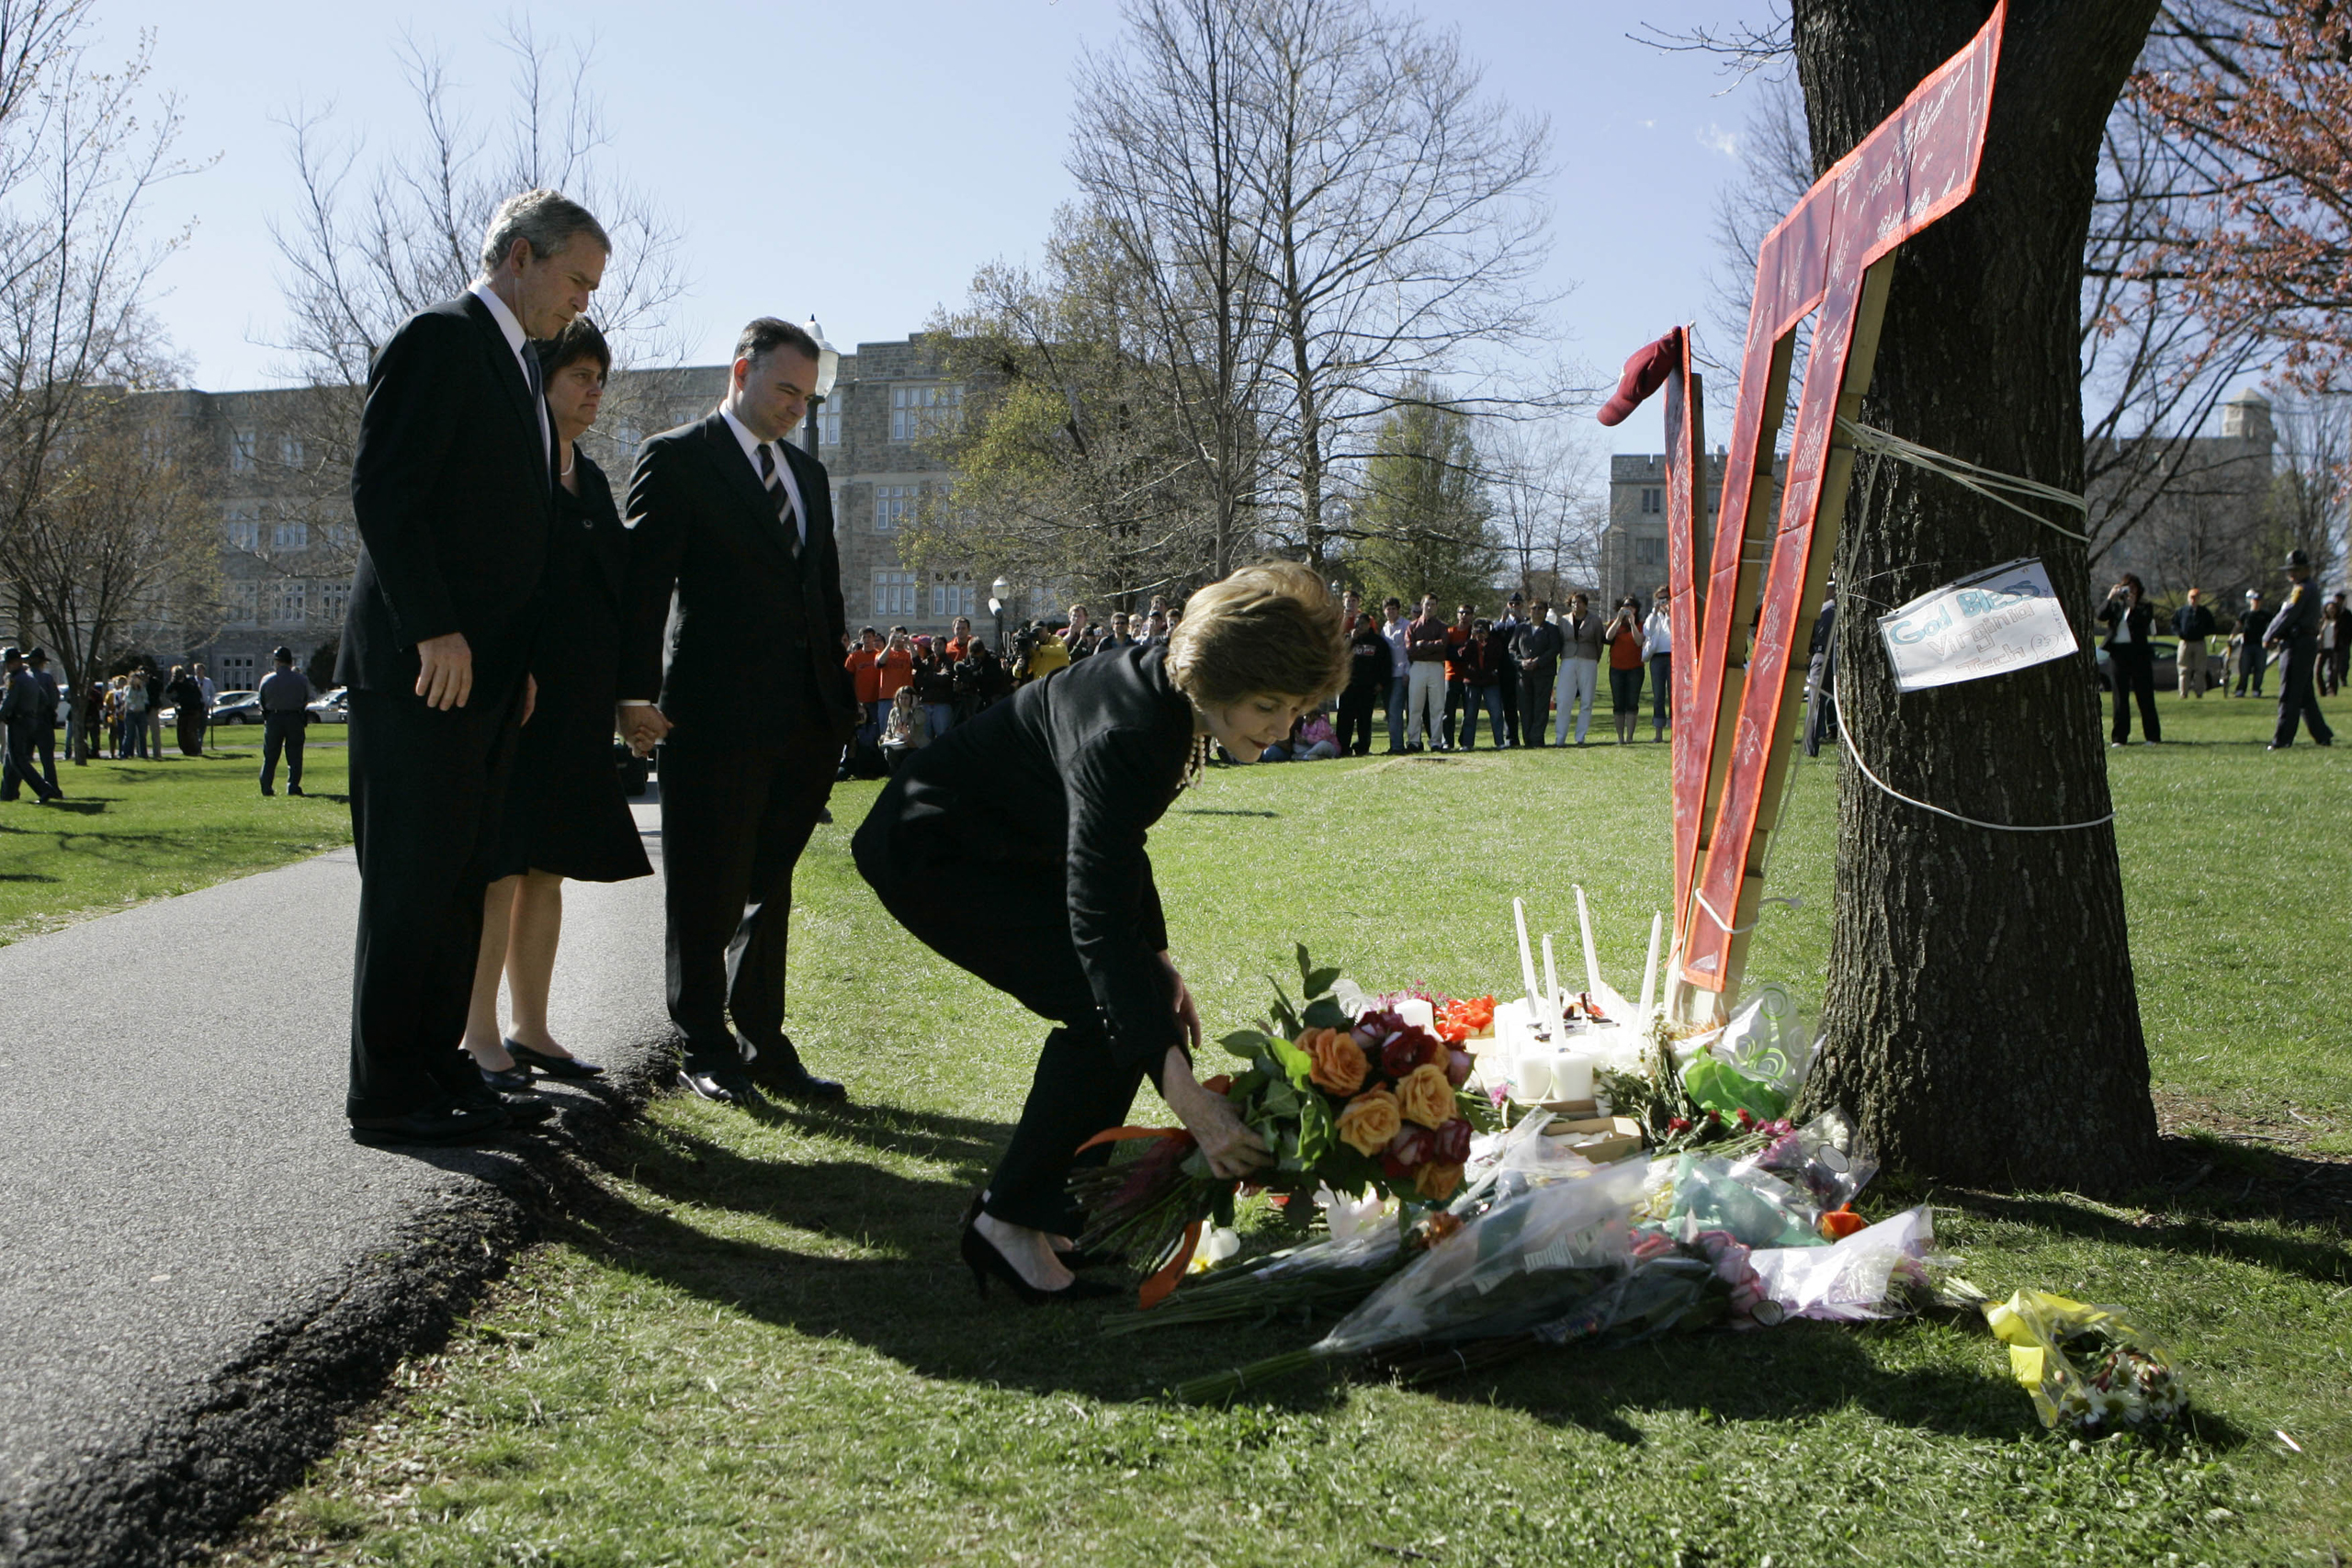 Former First lady Laura Bush, right, accompanied by Former President Bush, Anne Holton, wife of Virginia Gov. Tim Kaine and Gov. Kaine, lays flowers at a memorial for the Virginia Tech shootings victims in Blacksburg, Va.on April 17, 2007.